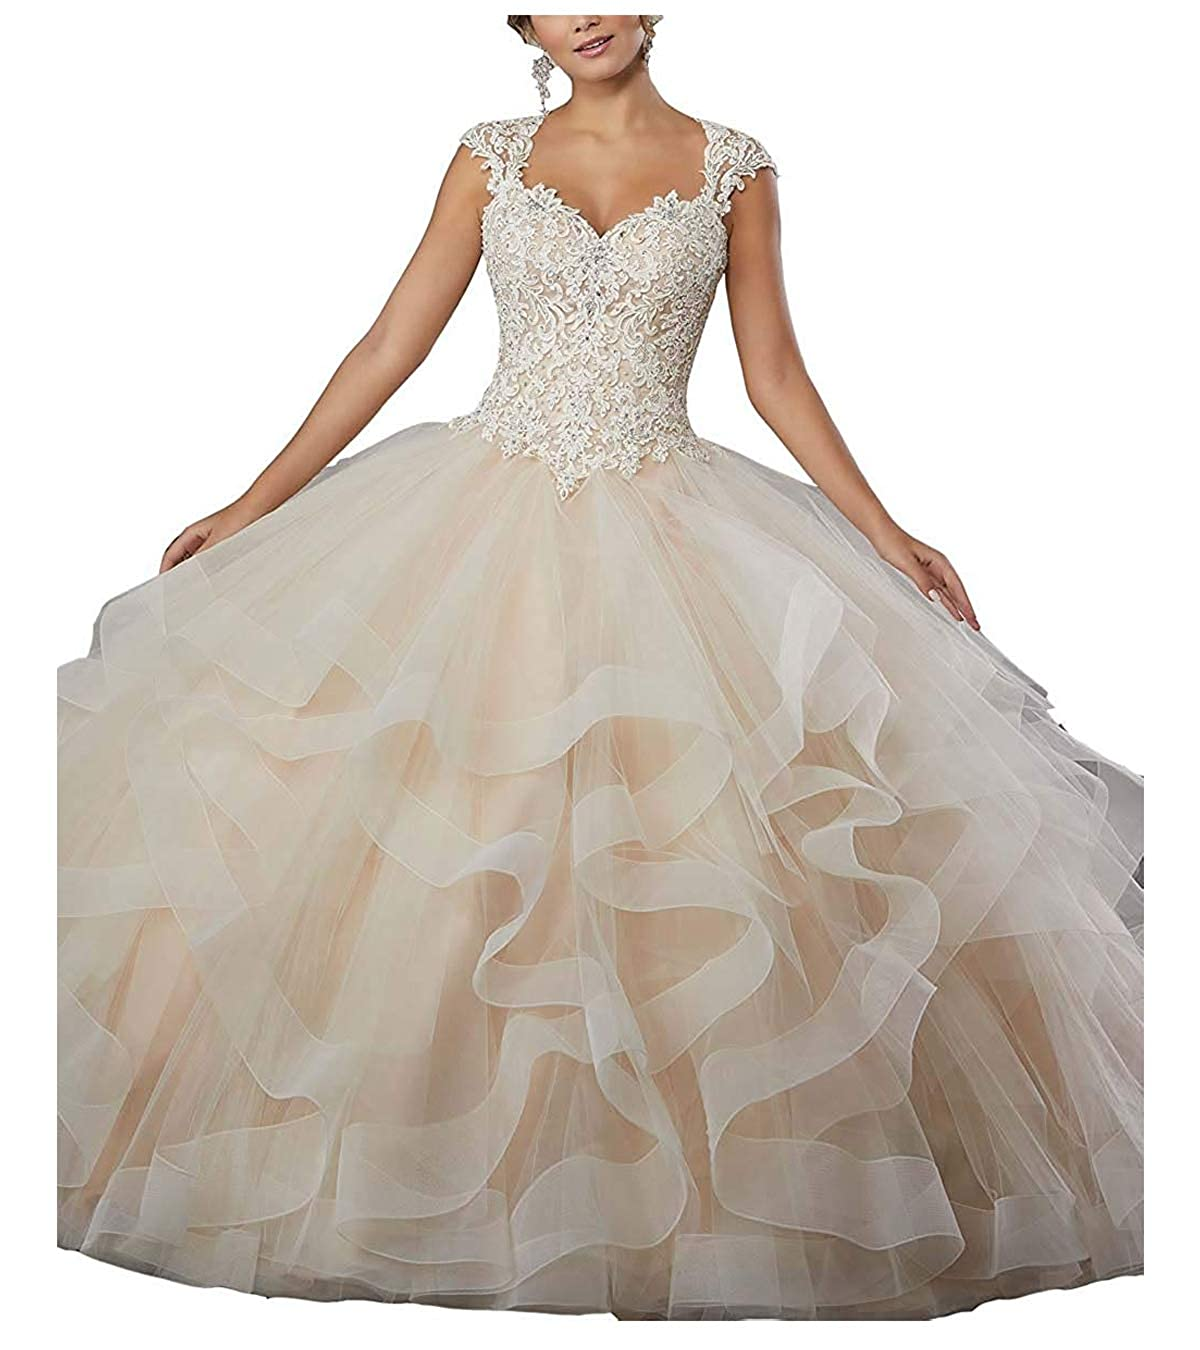 Champagne ZLQQ Women's Sweet 16 Lace Applique Beading Sleeveless Ball Gown Quinceanera Dresses